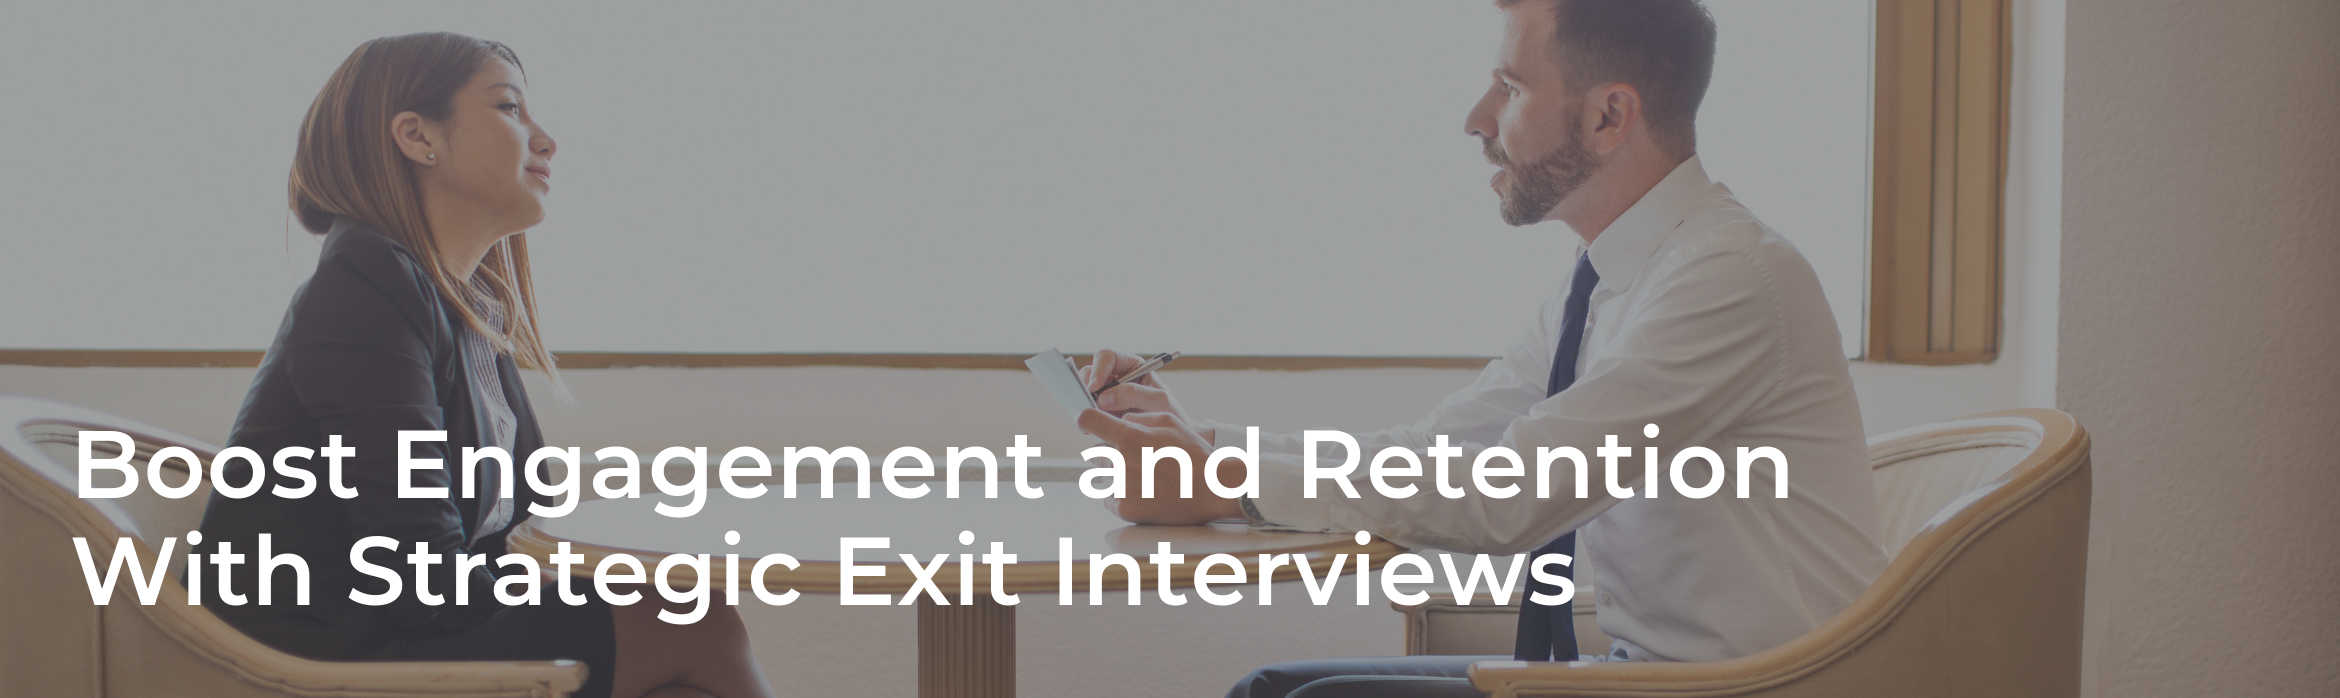 Boost Engagement and Retention With Strategic Exit Interviews